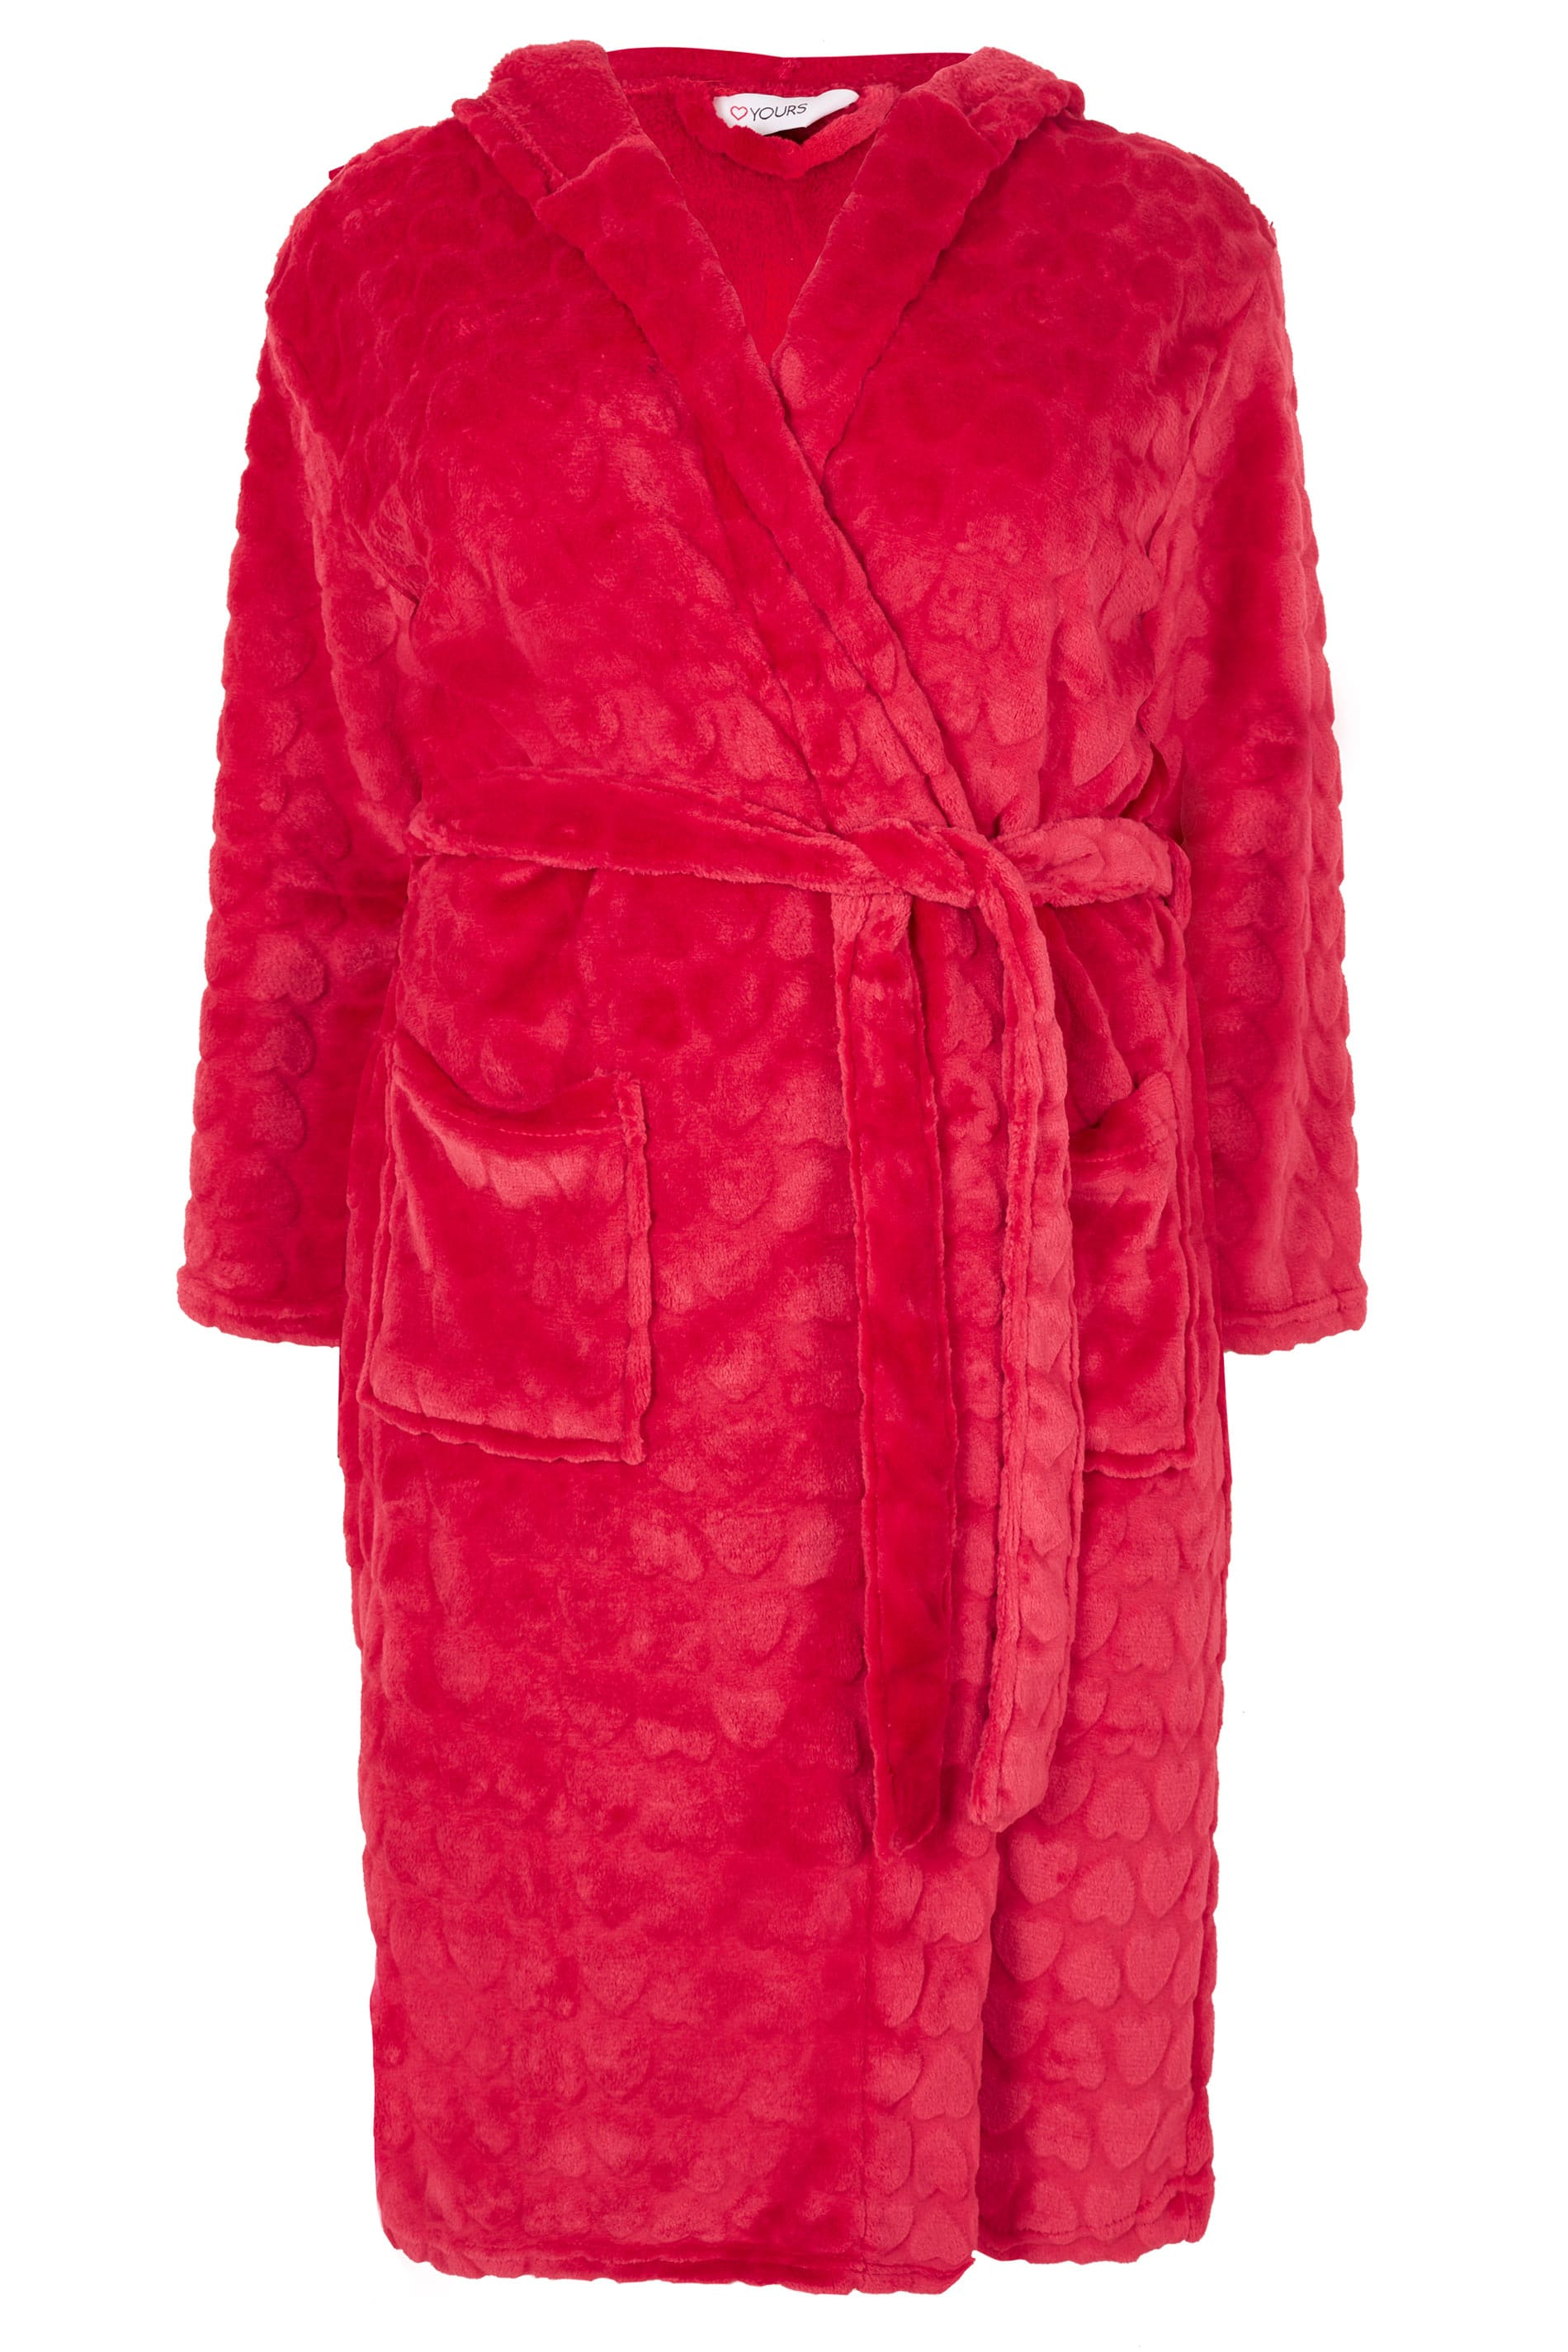 Pink Heart Textured Dressing Gown, Plus size 16 to 40